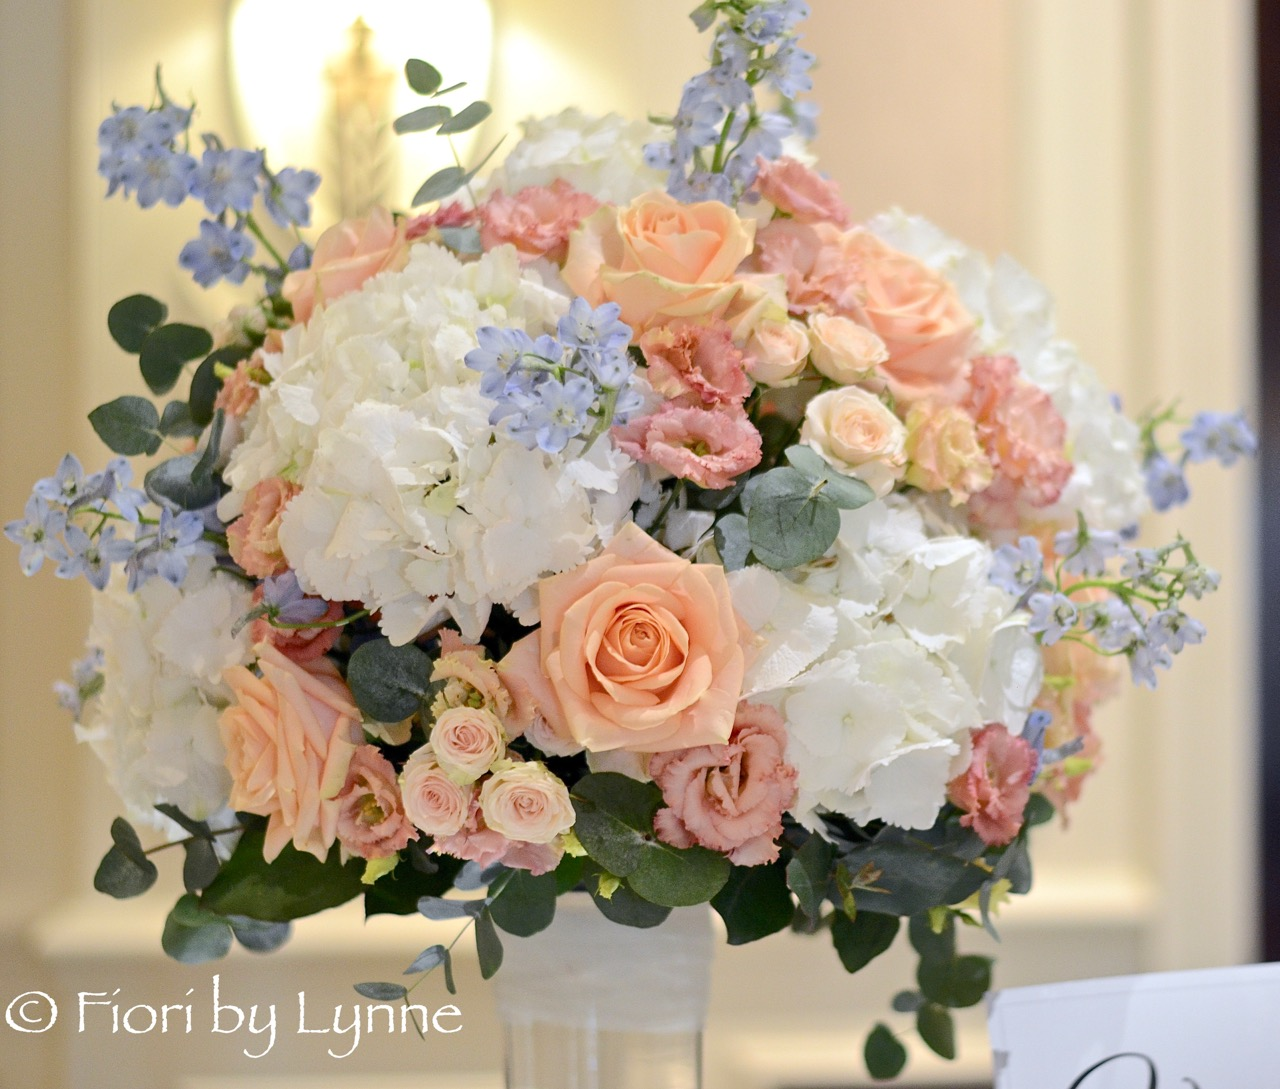 Snejinas classic peach blushblue and white wedding flowers the snejinas classic peach blushblue and white wedding flowers the four seasons hotel hook mightylinksfo